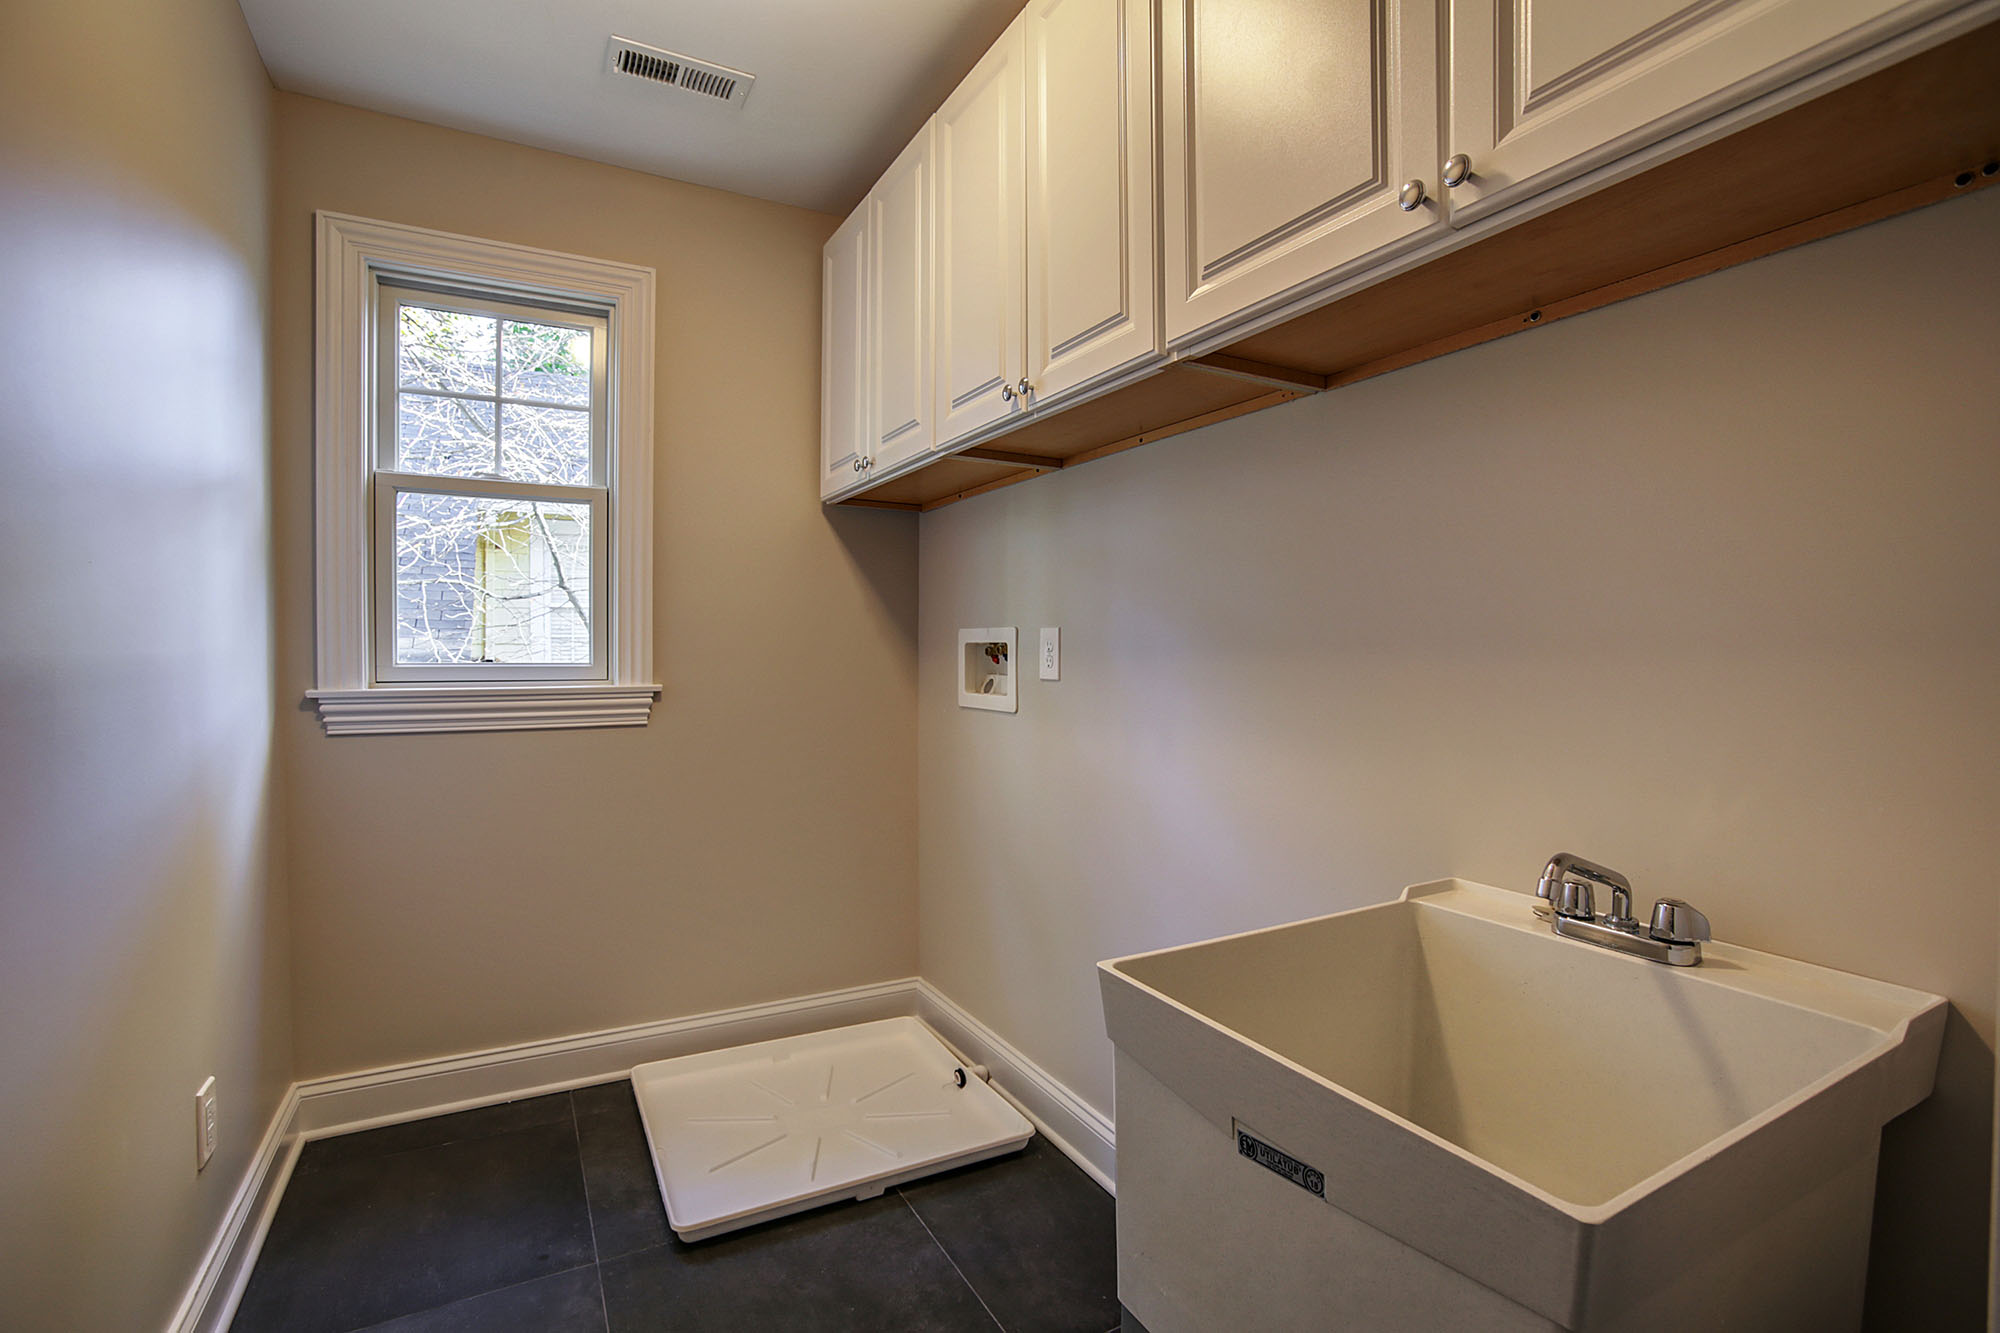 648 Maple Laundry Room